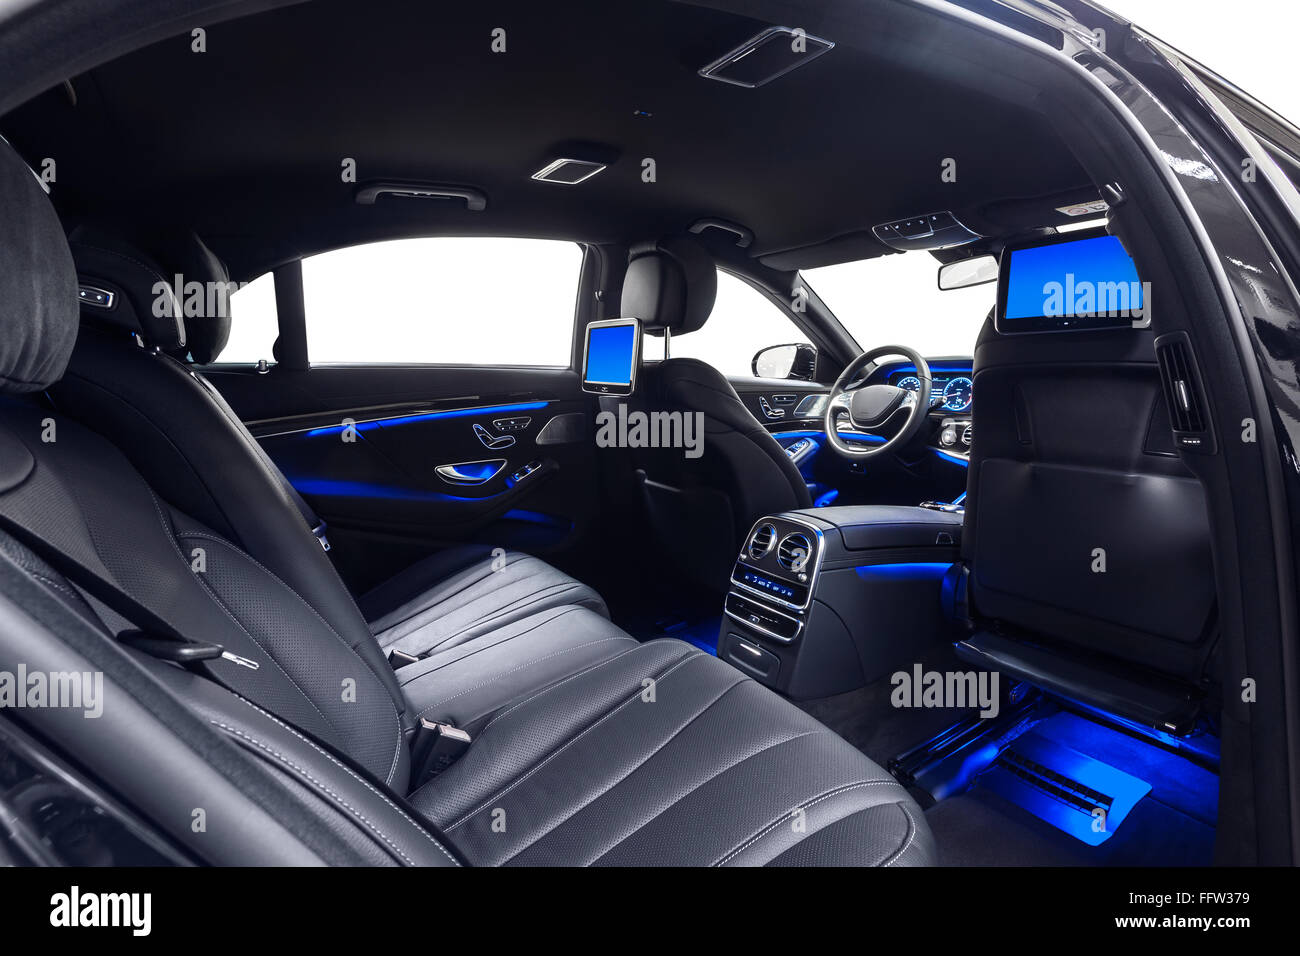 Car Interior Luxury. Comfortable Modern Black Salon With Multimedia U0026 Blue  Ambient Light. Cleaning And Detailing Car Service.